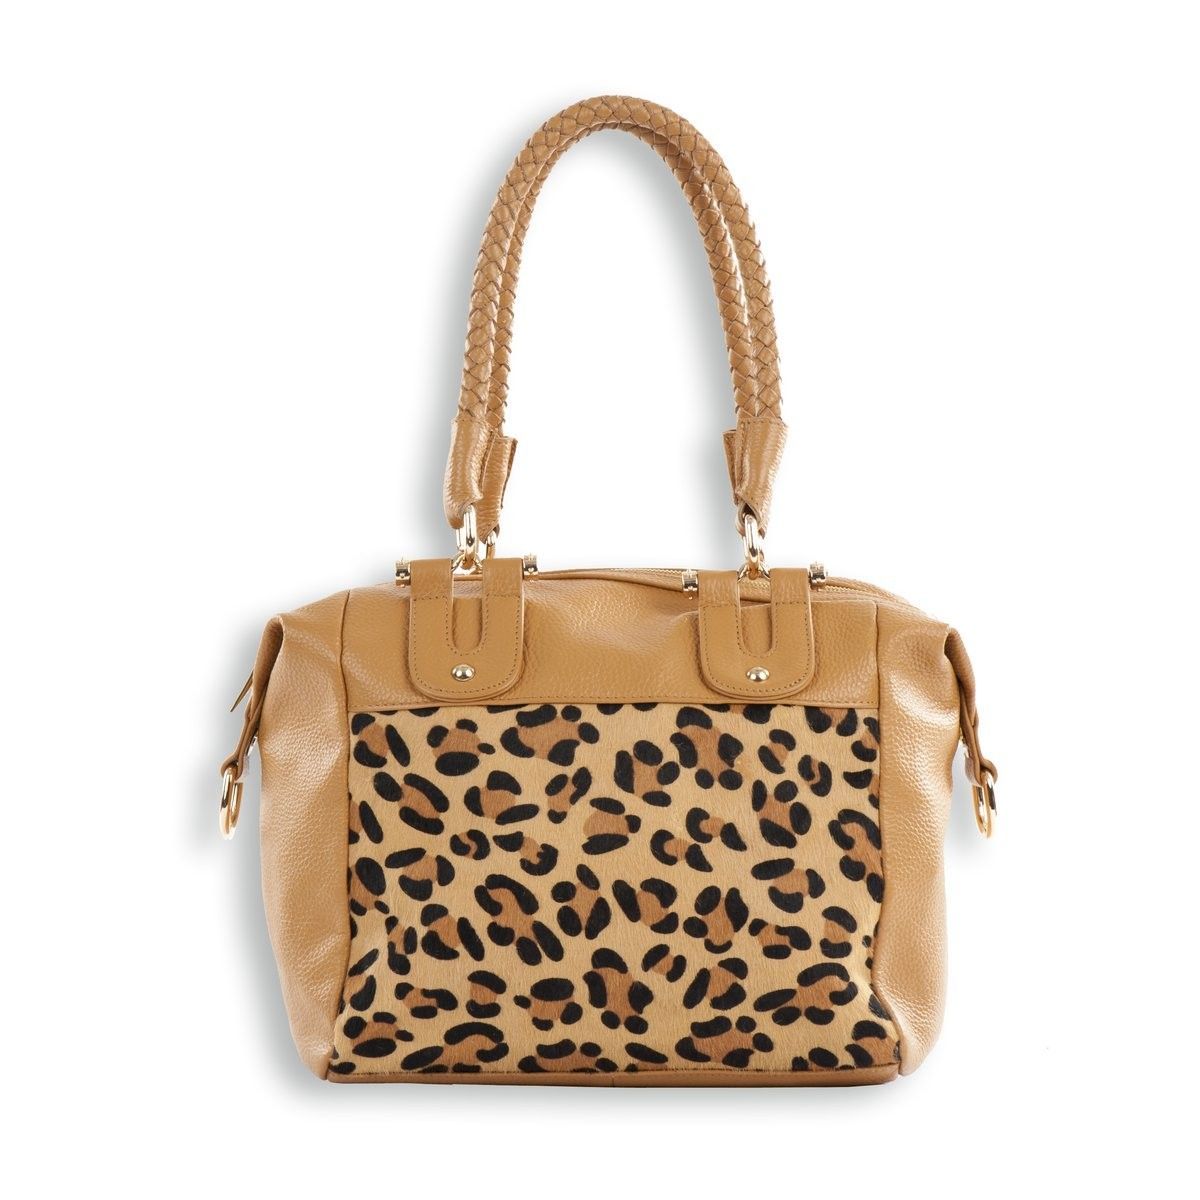 Soft Leather Handbag with Animal Print in-fill. Wonderful soft leather handbag from the 'Onyx' collection.